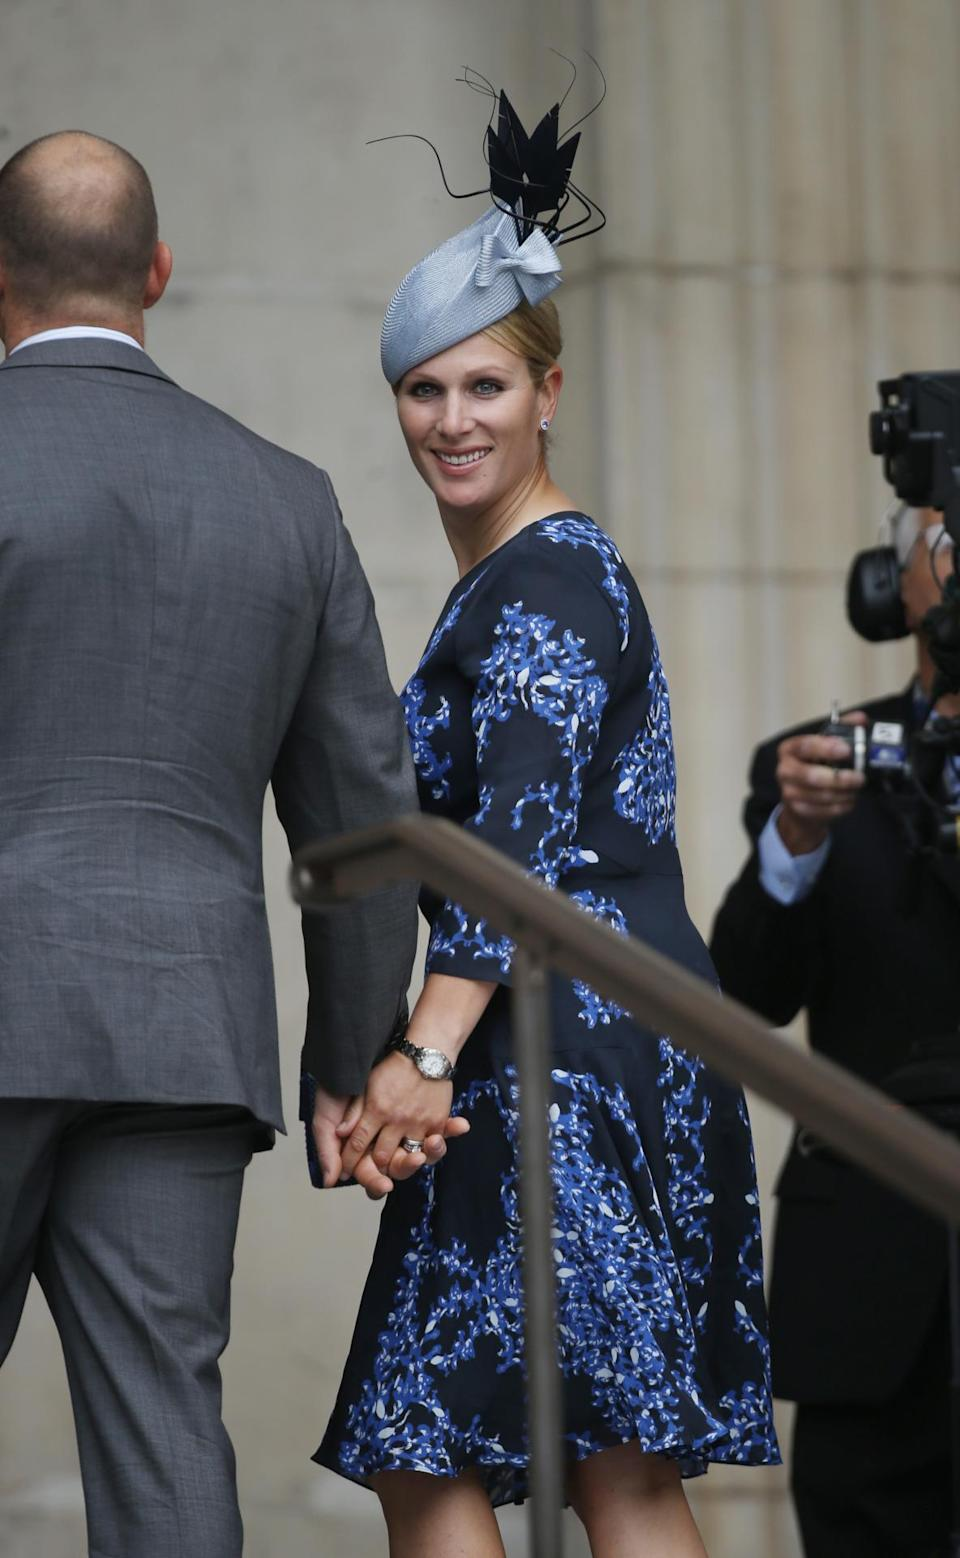 <p>Phillips stuck to the summery theme in a blue floral dress. <i>(Photo: PA Images)</i><br></p>